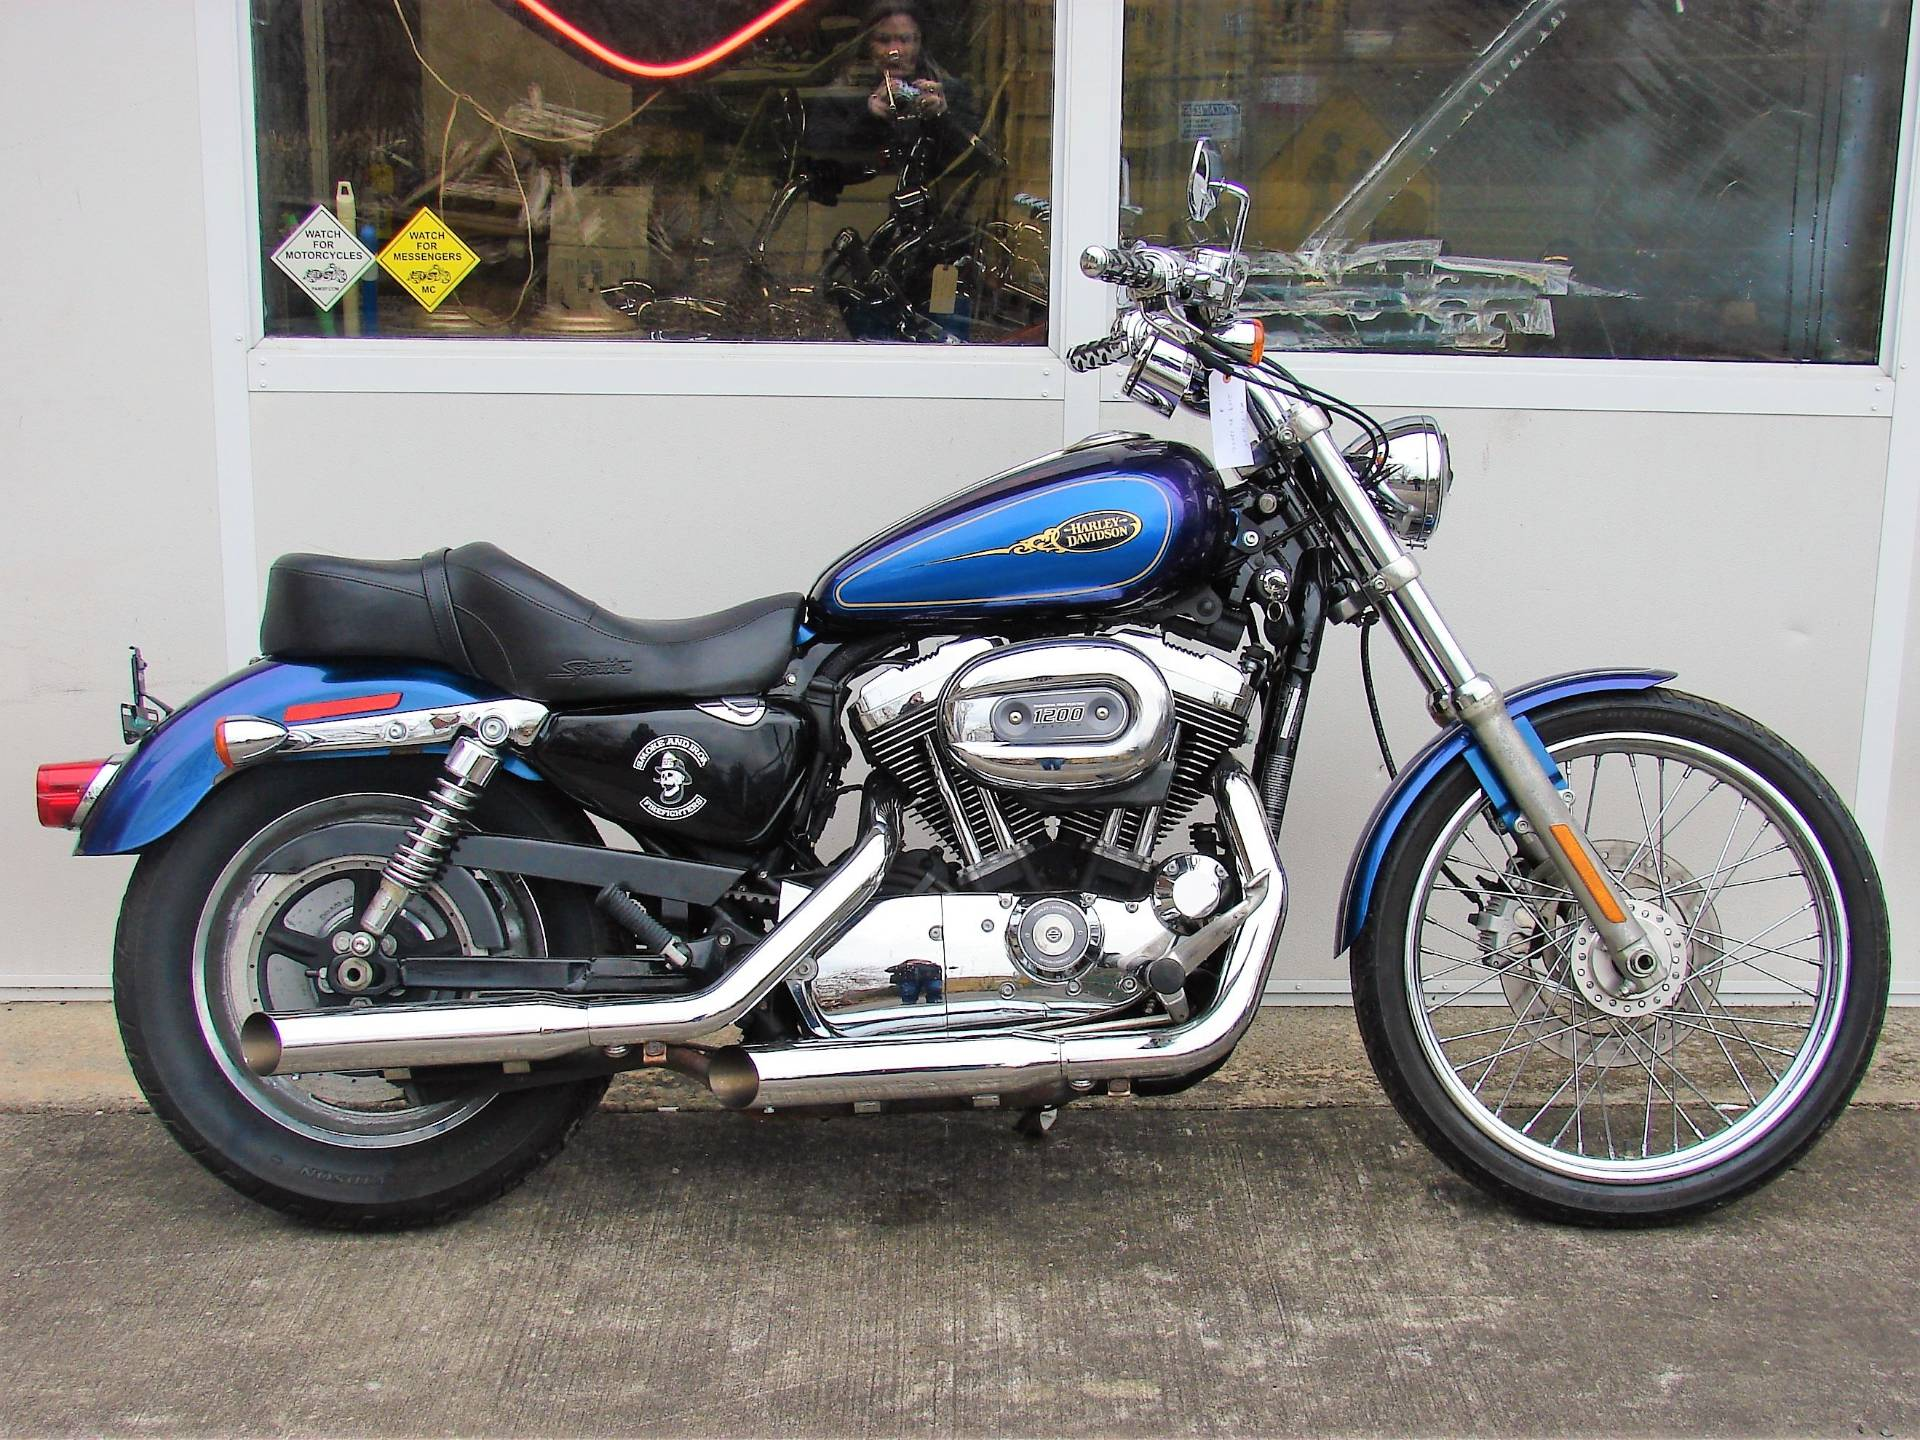 2009 Harley-Davidson XL 1200C Sportster in Williamstown, New Jersey - Photo 1